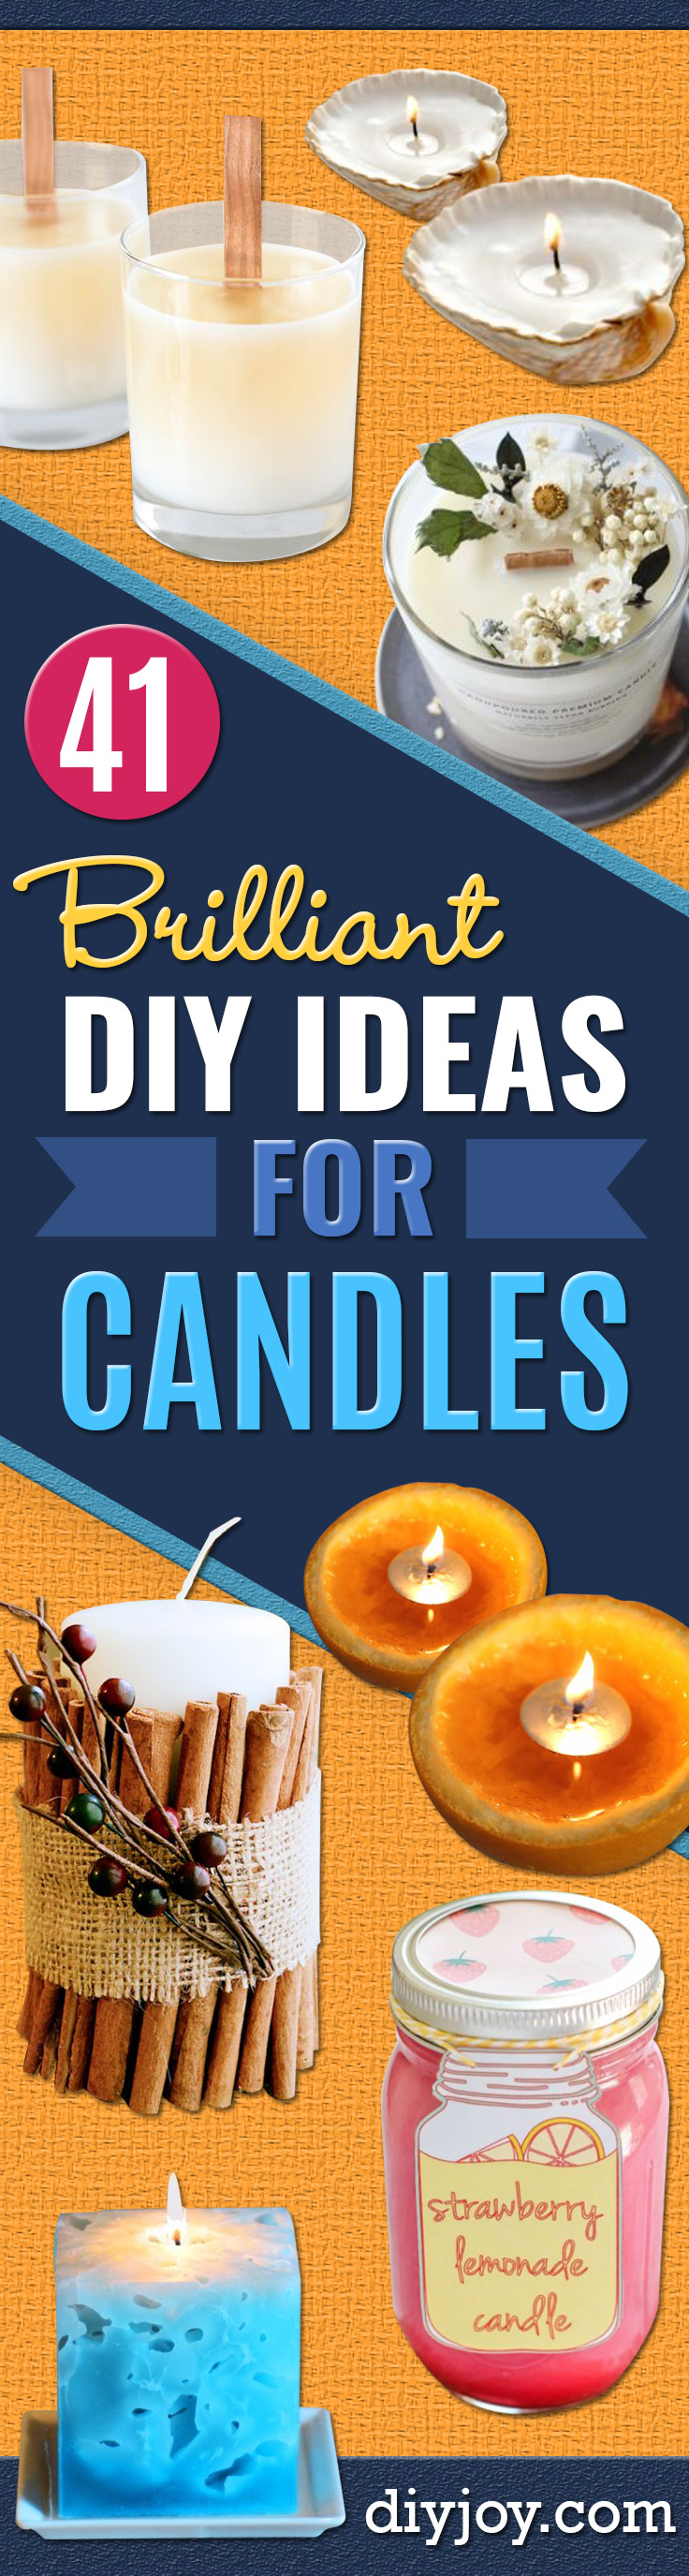 DIY Ideas for Candles - Cute, Cheap and Creative Ways to Decorate With Candles - Votives and Candle Holders Make Some Of Our Favorite Home Decor Ideas and Homemade Do It Yourself Gifts - Give One of These Inexpensive Ideas to Mom, Dad and Friends - Easy Dollar Store Crafts With Candle http://diyjoy.com/diy-ideas-candles